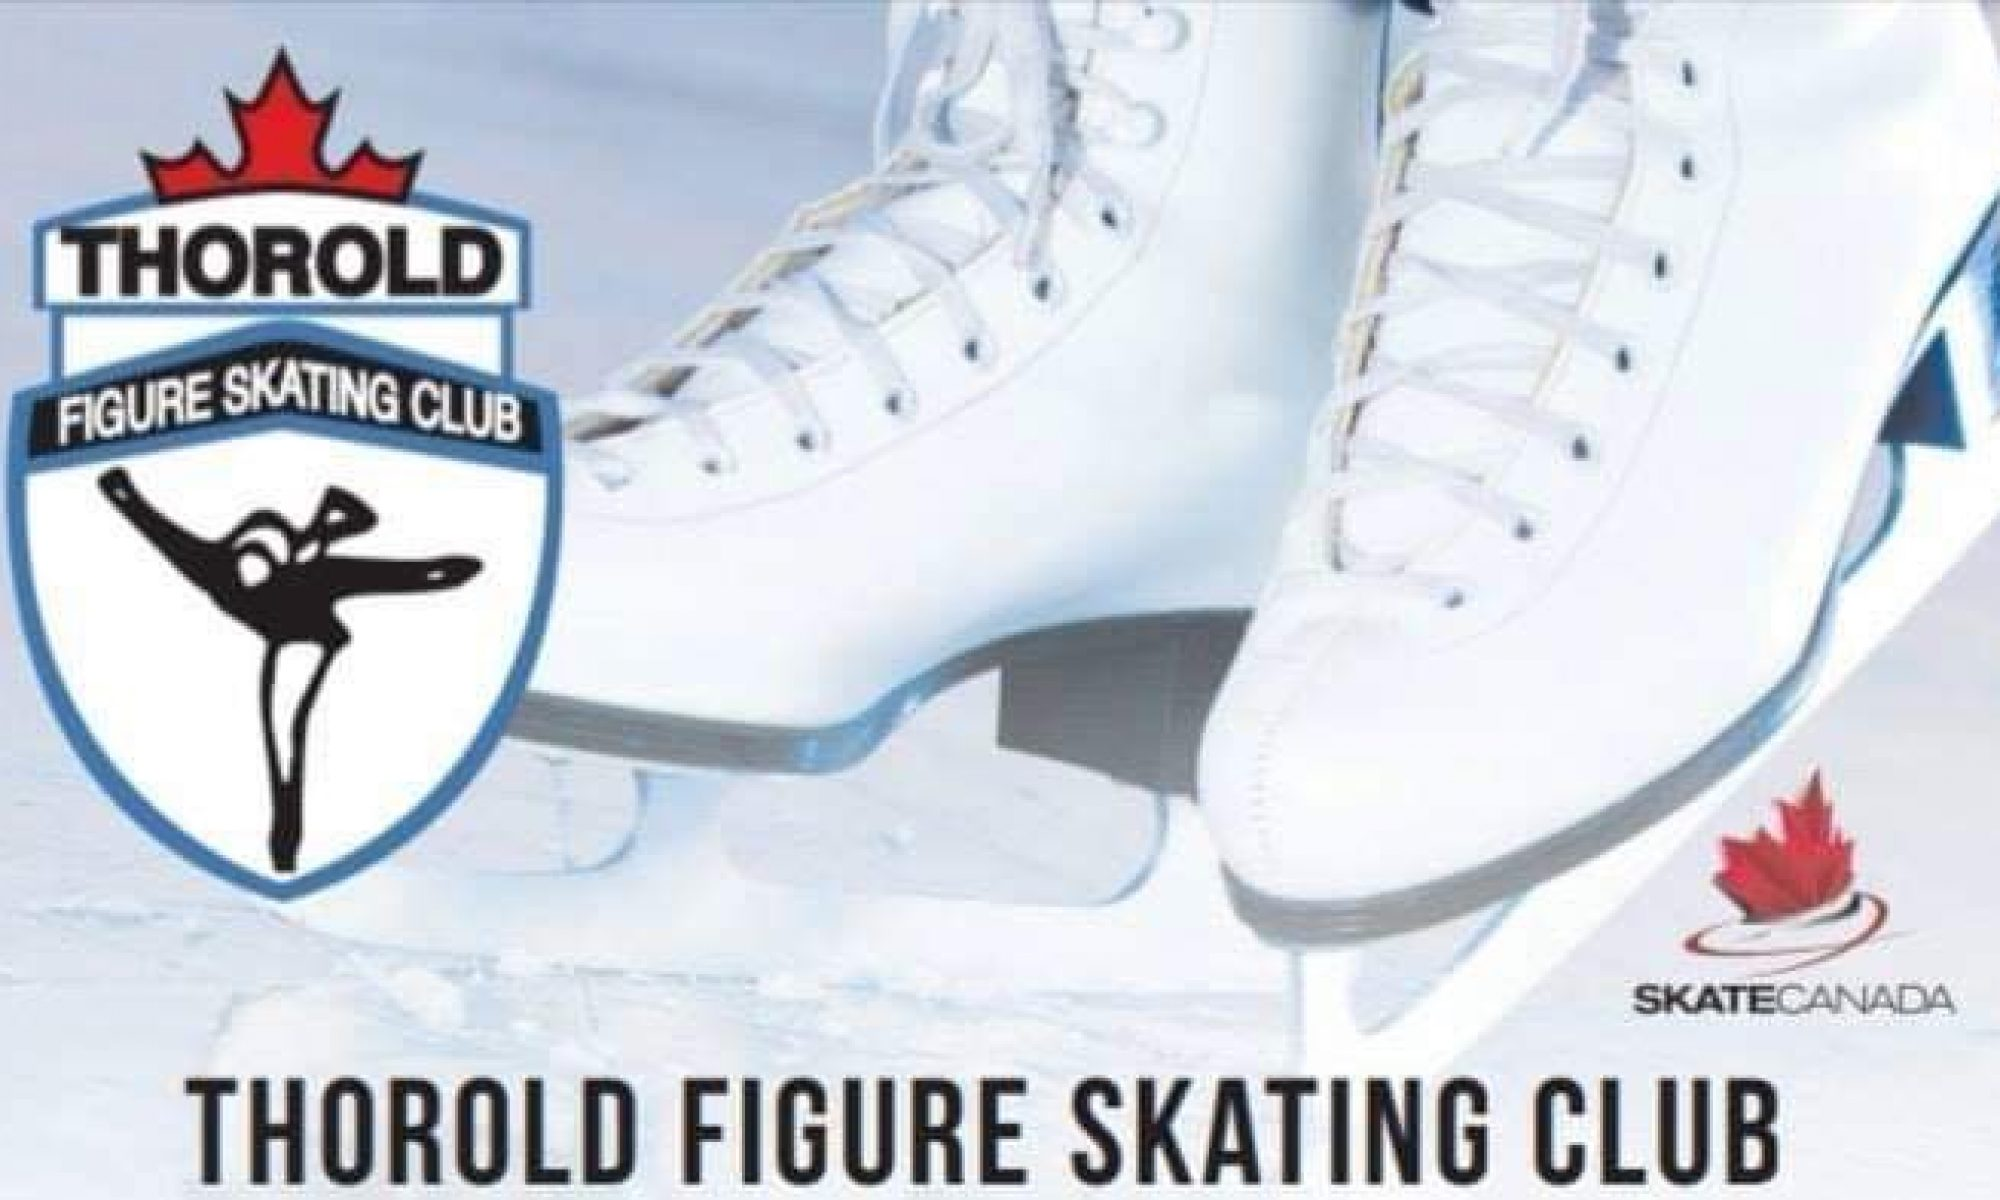 Thorold Figure Skating Club